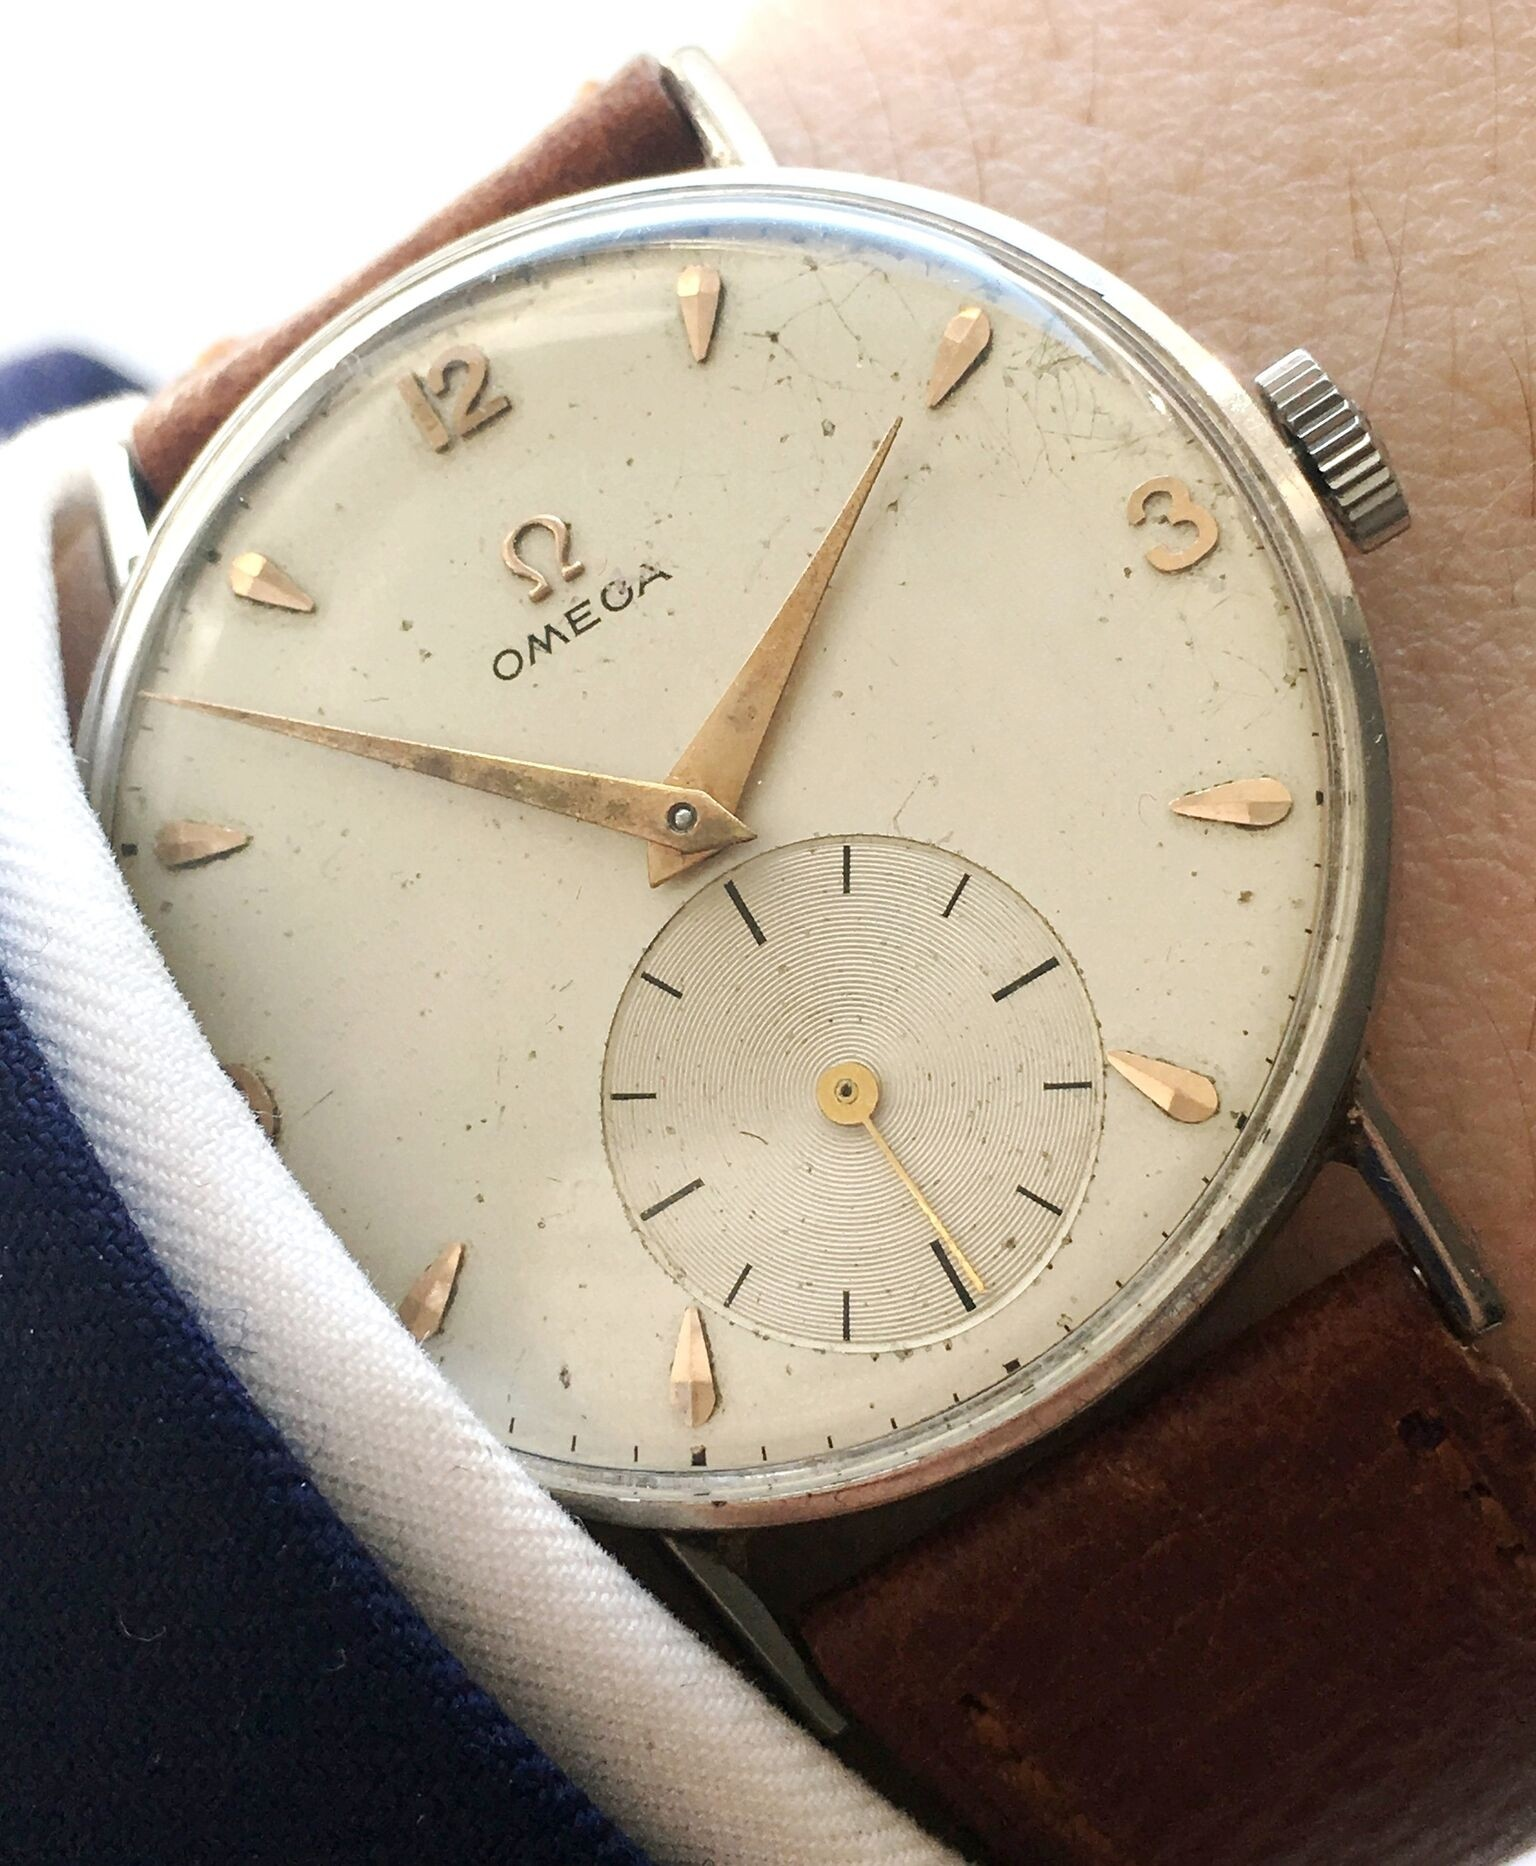 Omega 35mm Vintage Watch with Big small second-39